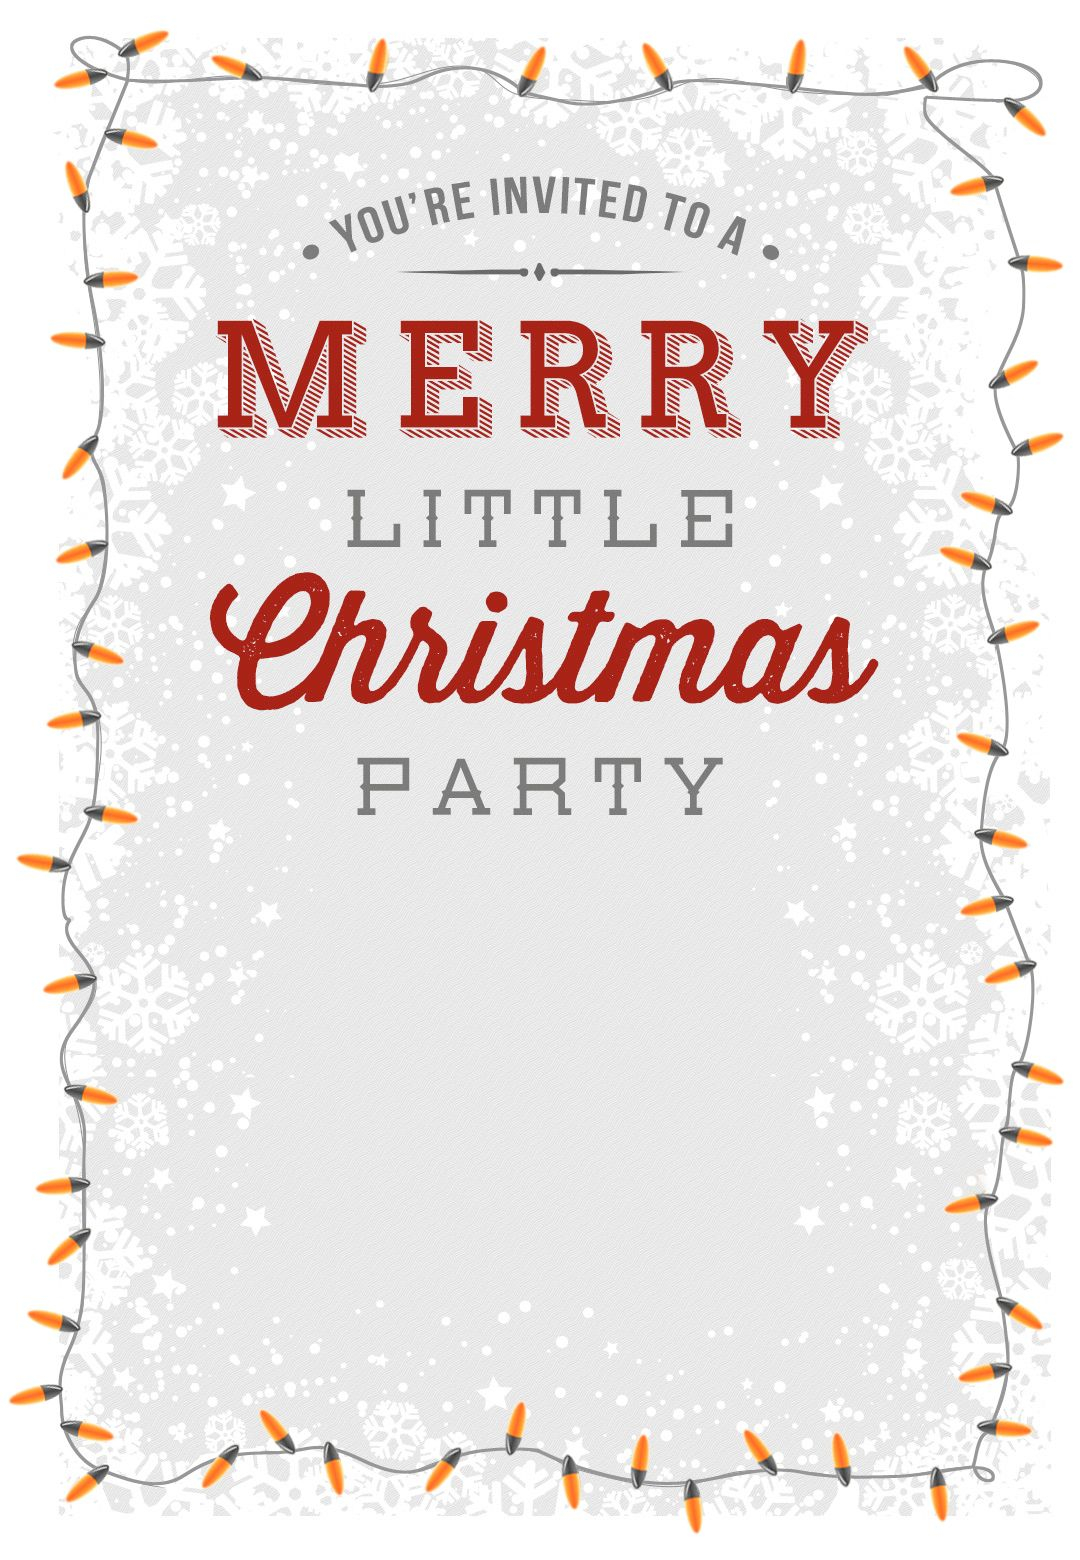 A Merry Little Party Free Printable Christmas Invitation Template for size 1080 X 1560